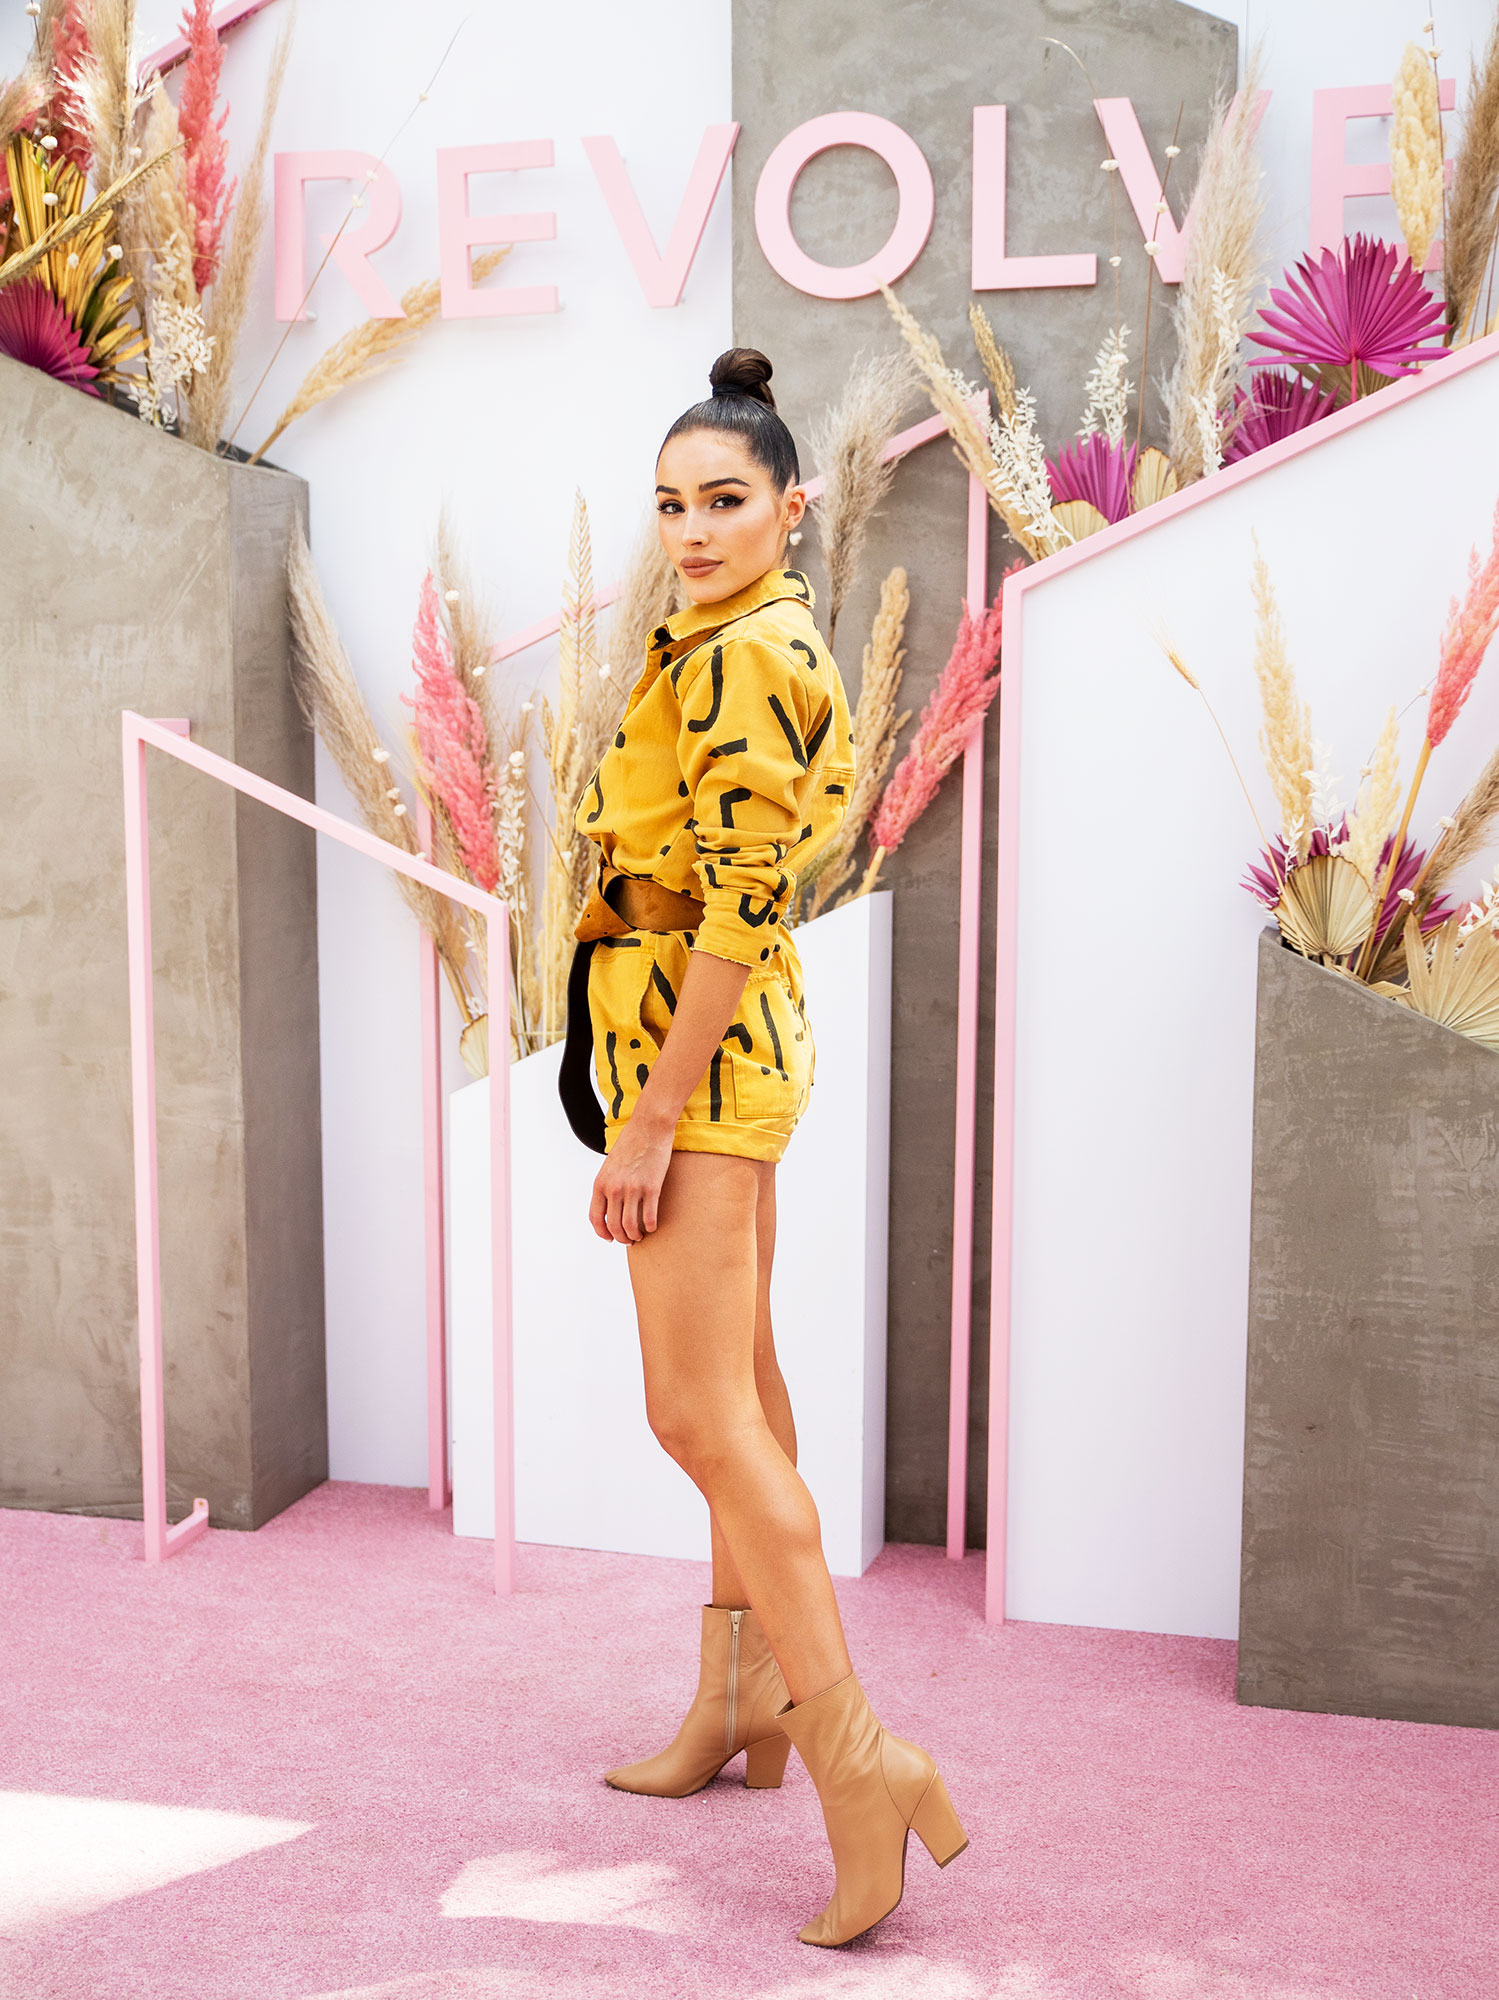 Olivia Culpo coachella fashion - Nude booties made the perfect complement to the model's yellow romper at the Revolve Festival on Sunday, April 14.